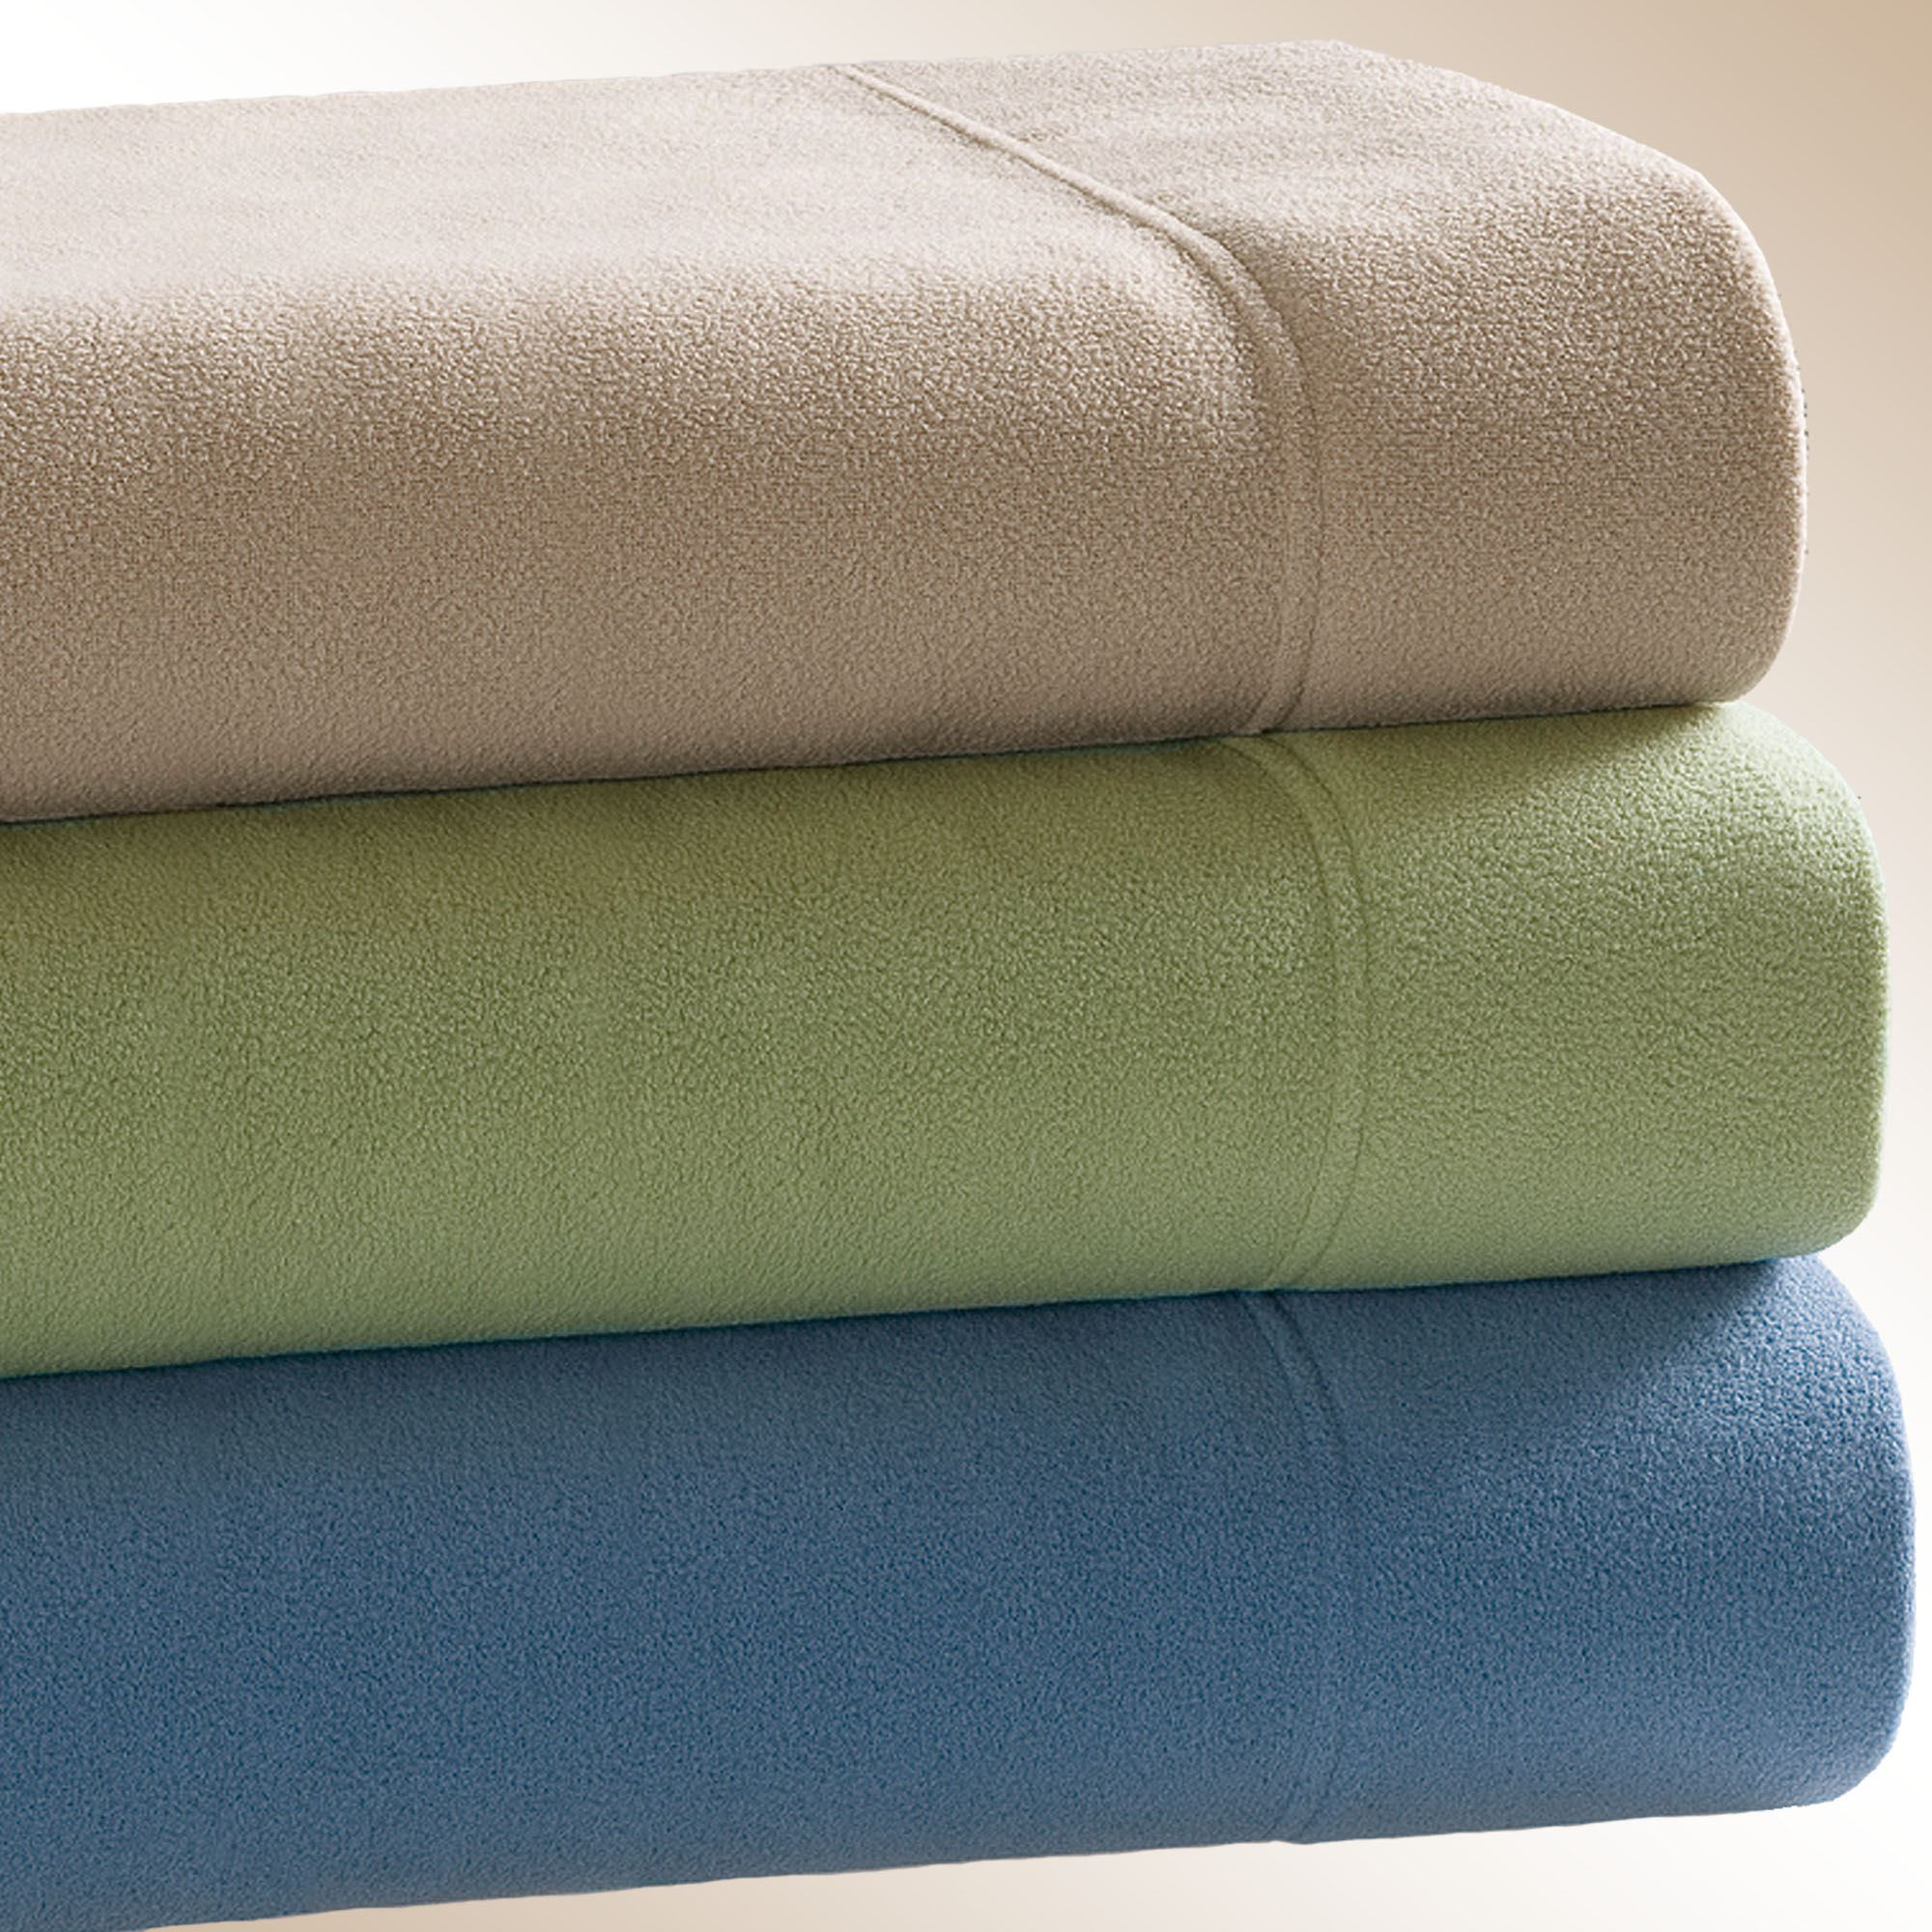 200 Gsm Micro Fleece Sheet Sets